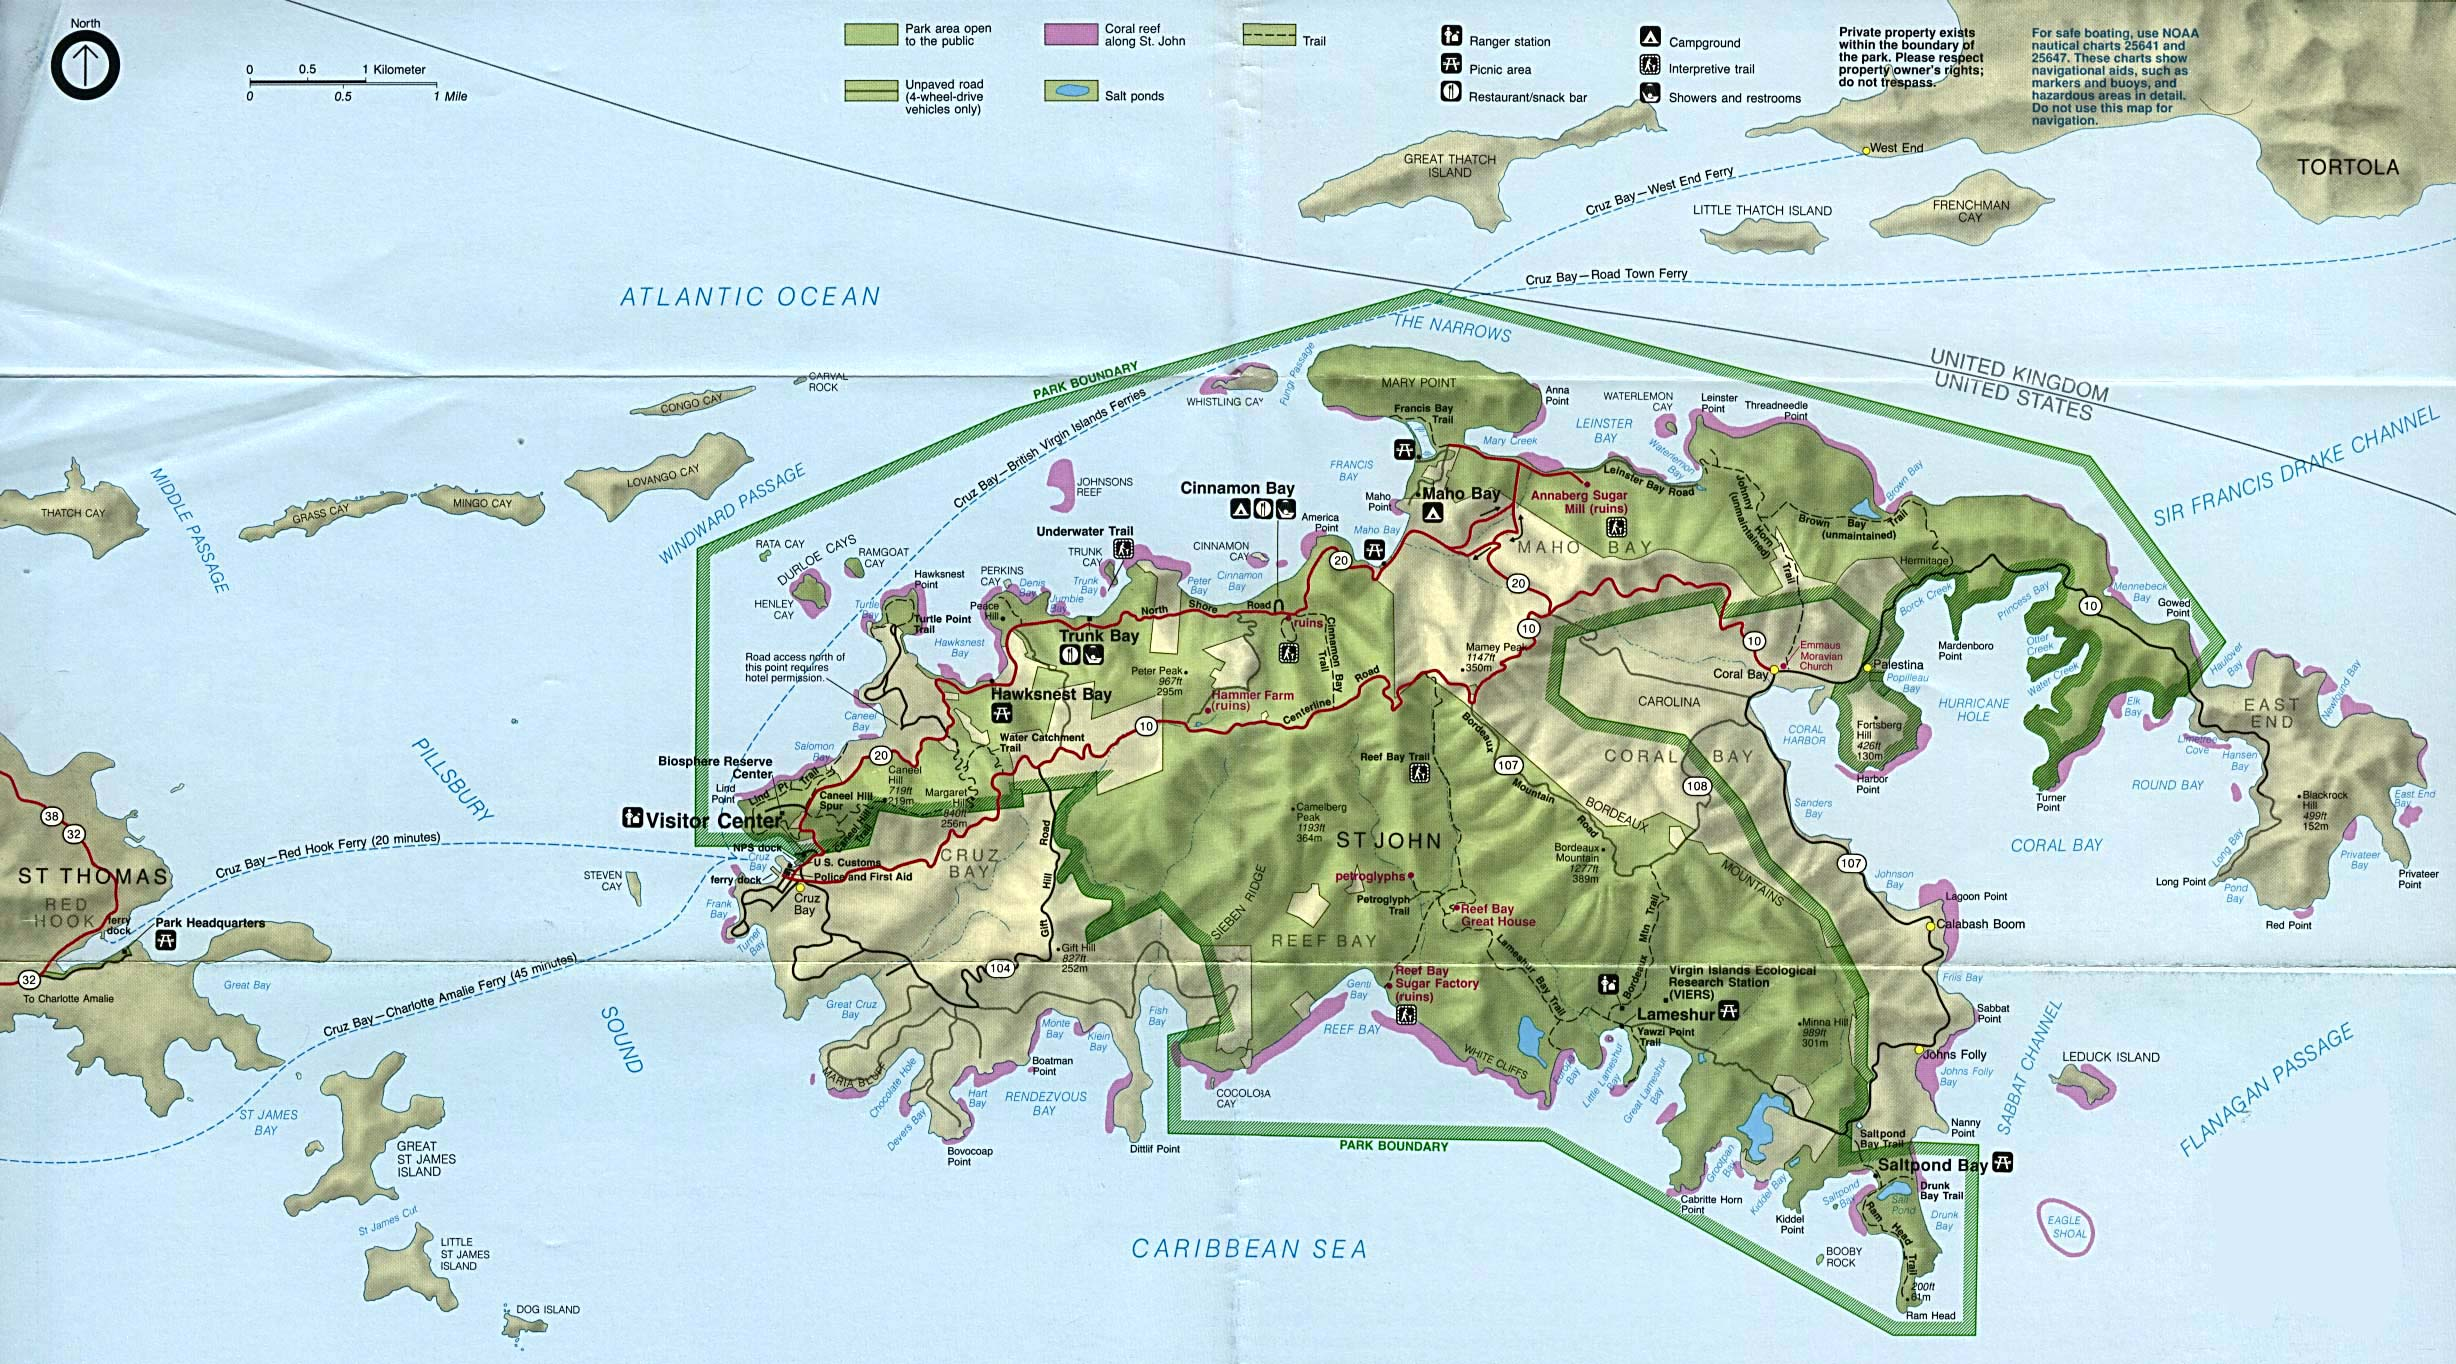 large detailed tourist and road map of st john island with relief